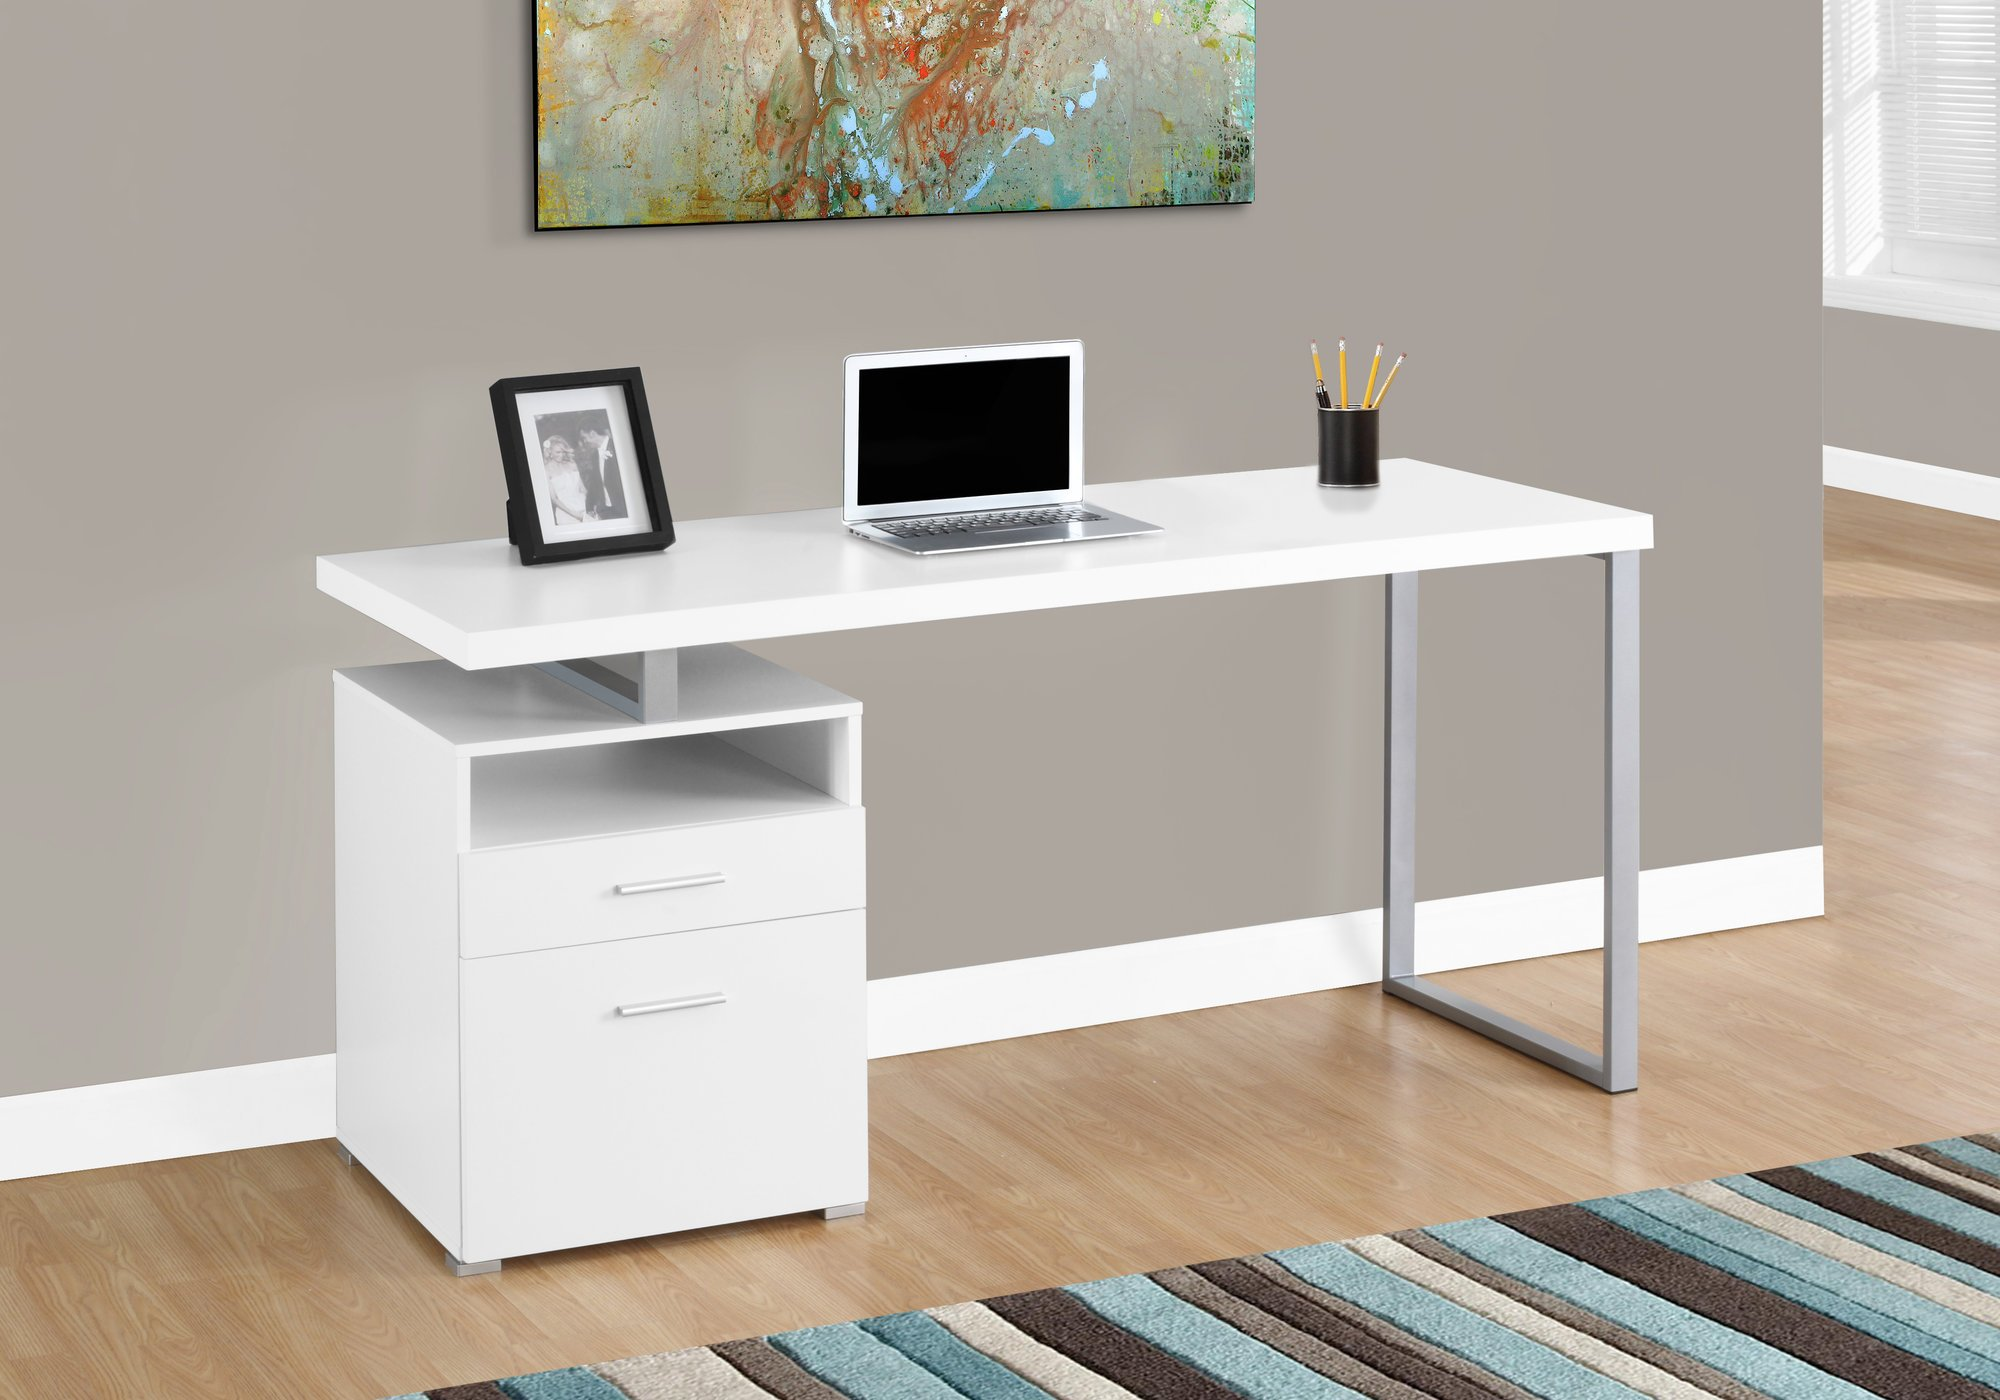 Monarch Specialties I I 7144 Laptop Table with Drawer Open Shelf and File Cabinet - Left or Right Set Up Computer, Writing Desk for Home & Office, 60'' L, White by Monarch Specialties